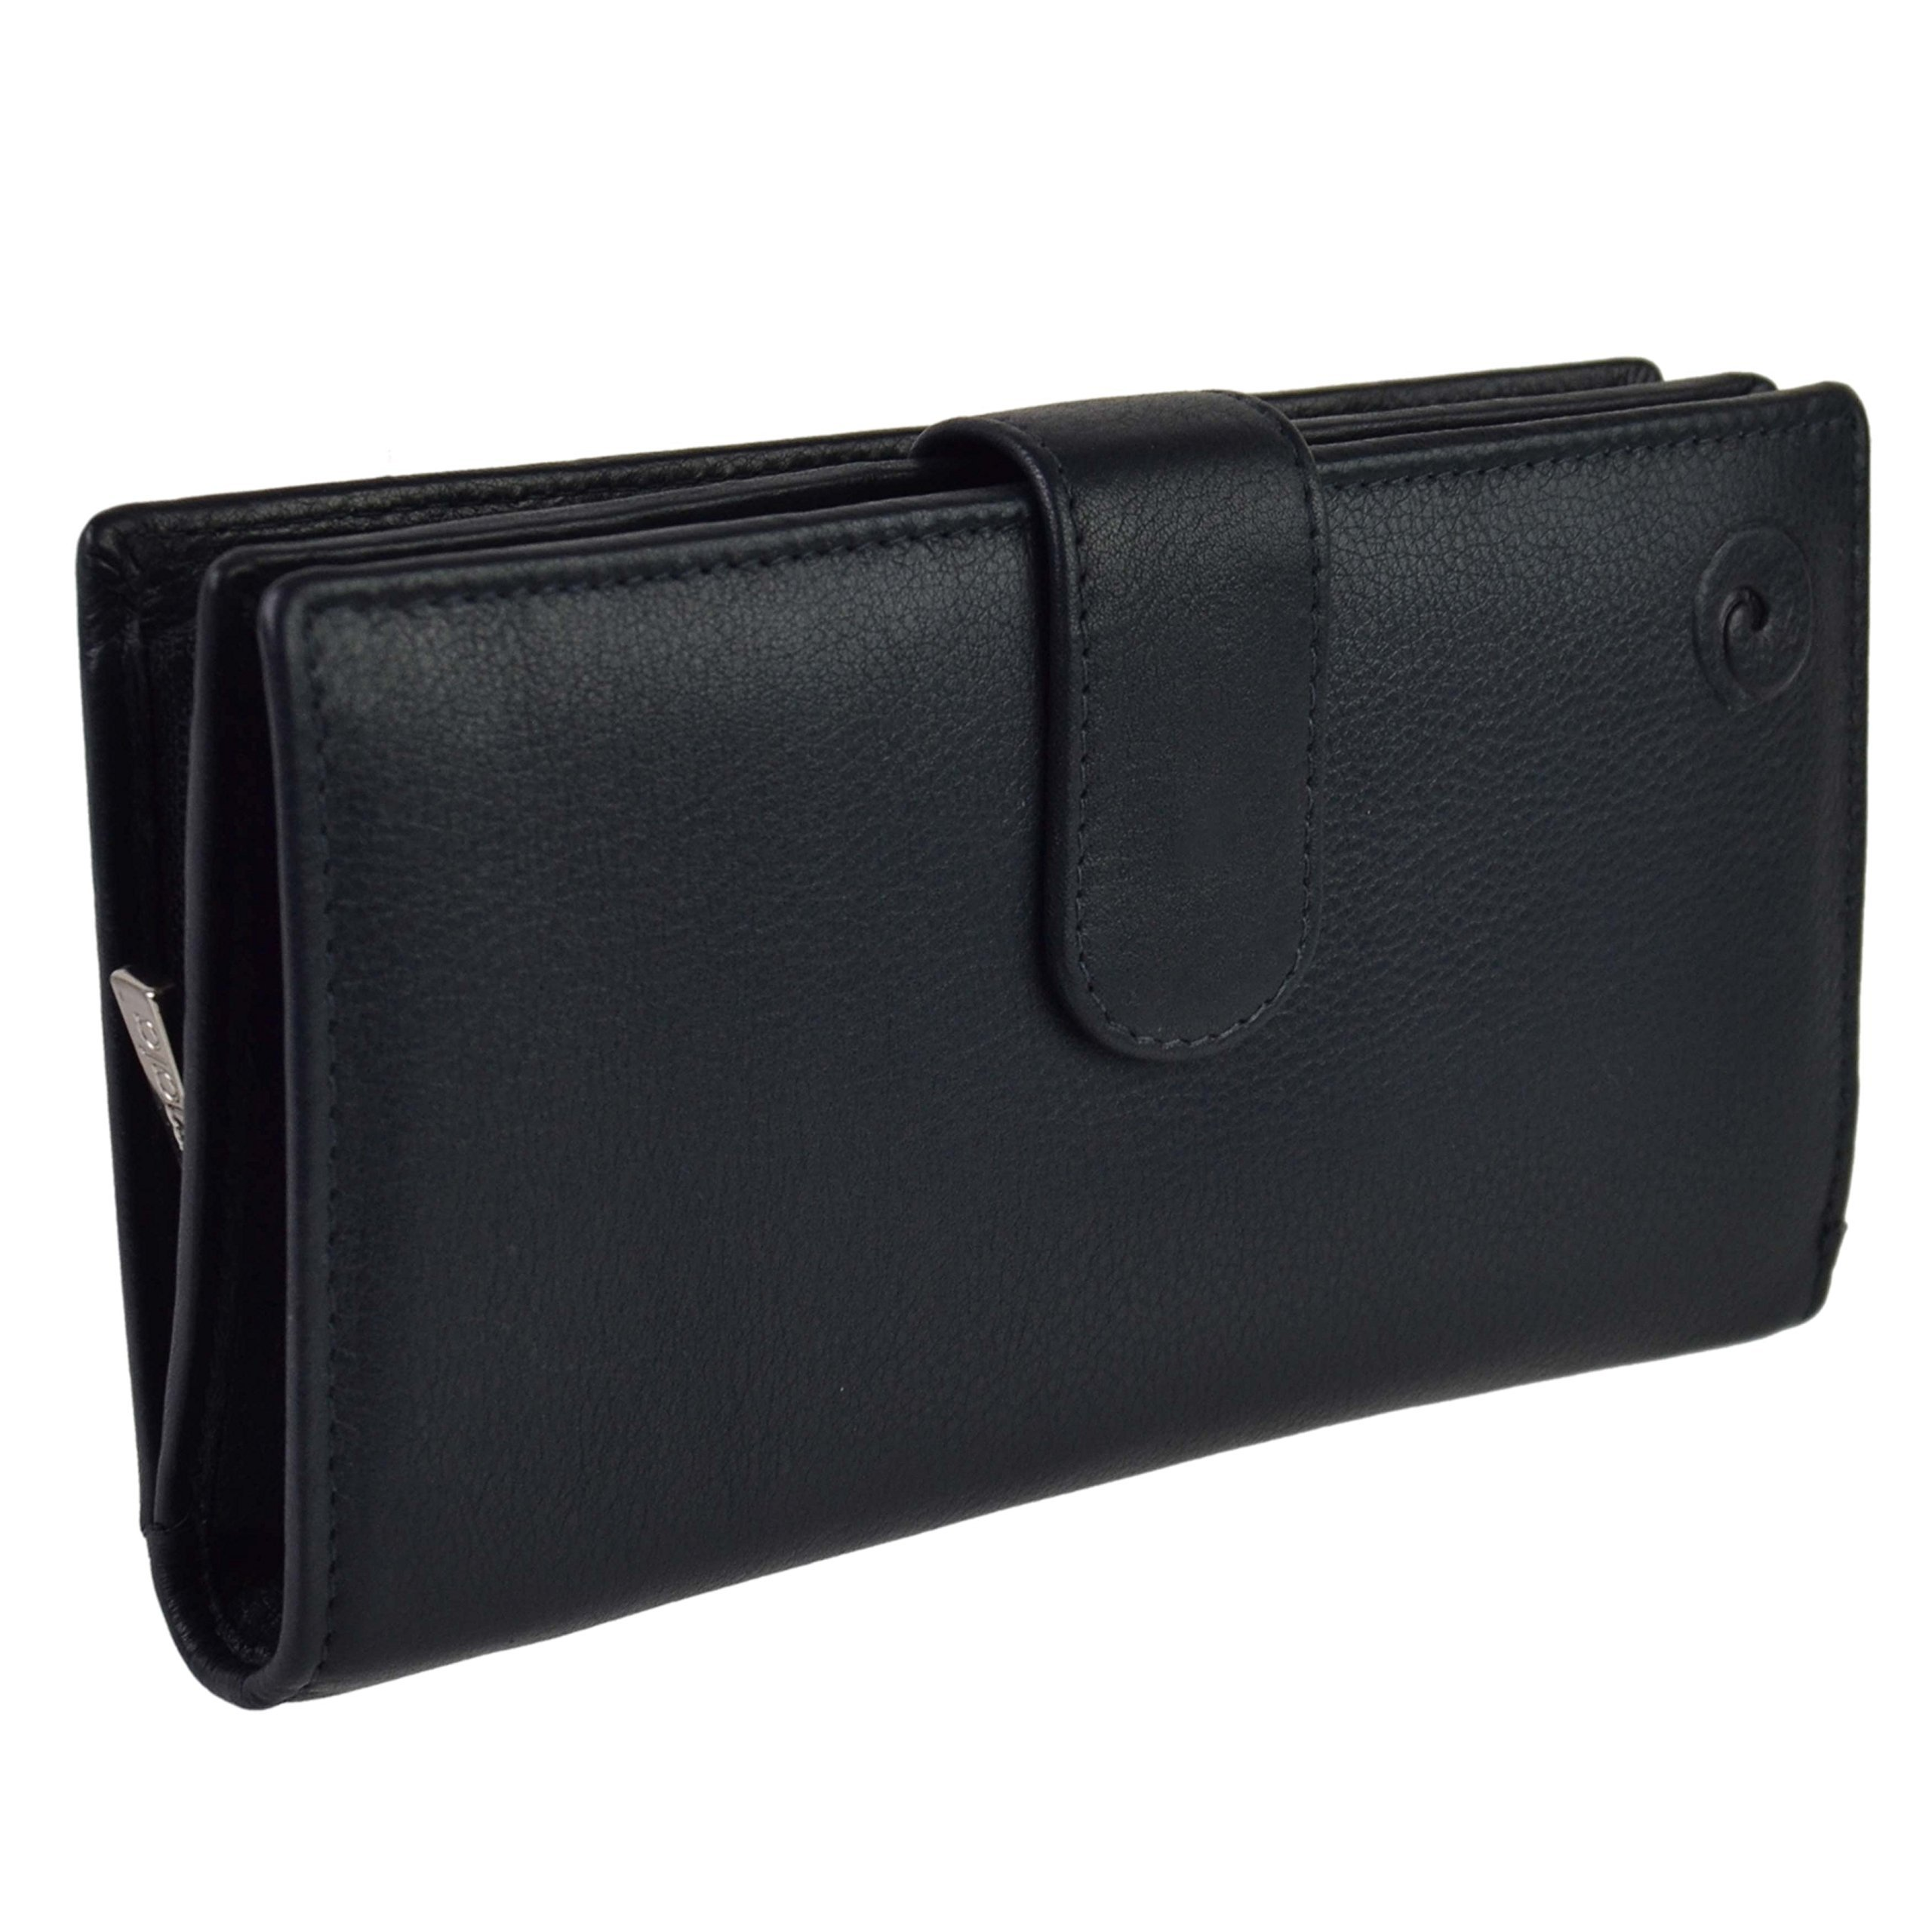 Mala Leather Women's Soft Leather Tabbed Rfid Protection Purse/Wallet Onesize Black